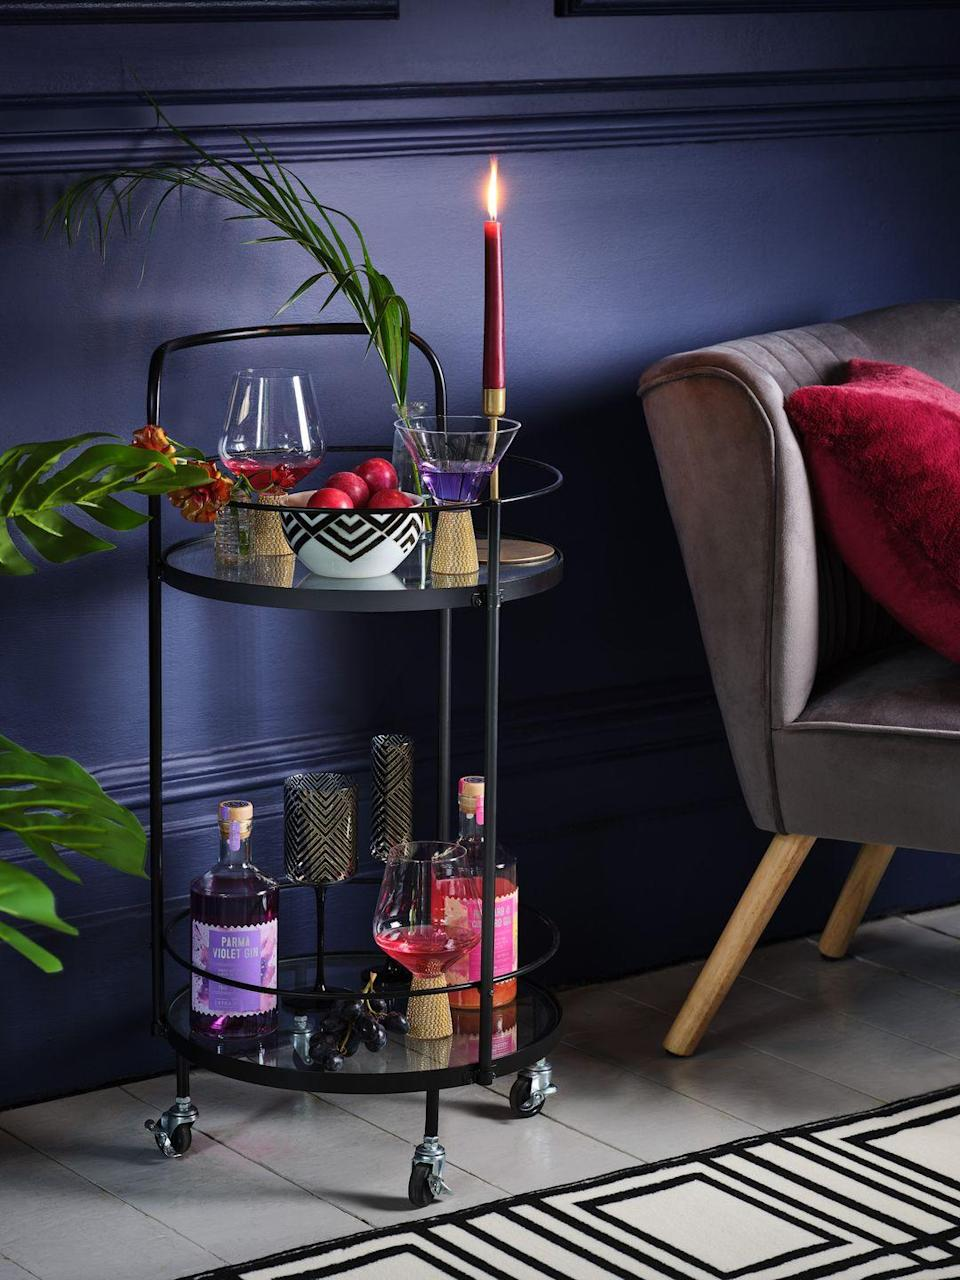 """<p>'Made up of bold colours and flamboyant style, this trend is perfect for creating an entertaining space at home. Ornate florals, velvets and fringing make for an eclectic and theatrical feel.'</p><p><a class=""""link rapid-noclick-resp"""" href=""""https://direct.asda.com/george/home/D26,default,sc.html"""" rel=""""nofollow noopener"""" target=""""_blank"""" data-ylk=""""slk:SHOP NOW"""">SHOP NOW</a></p>"""